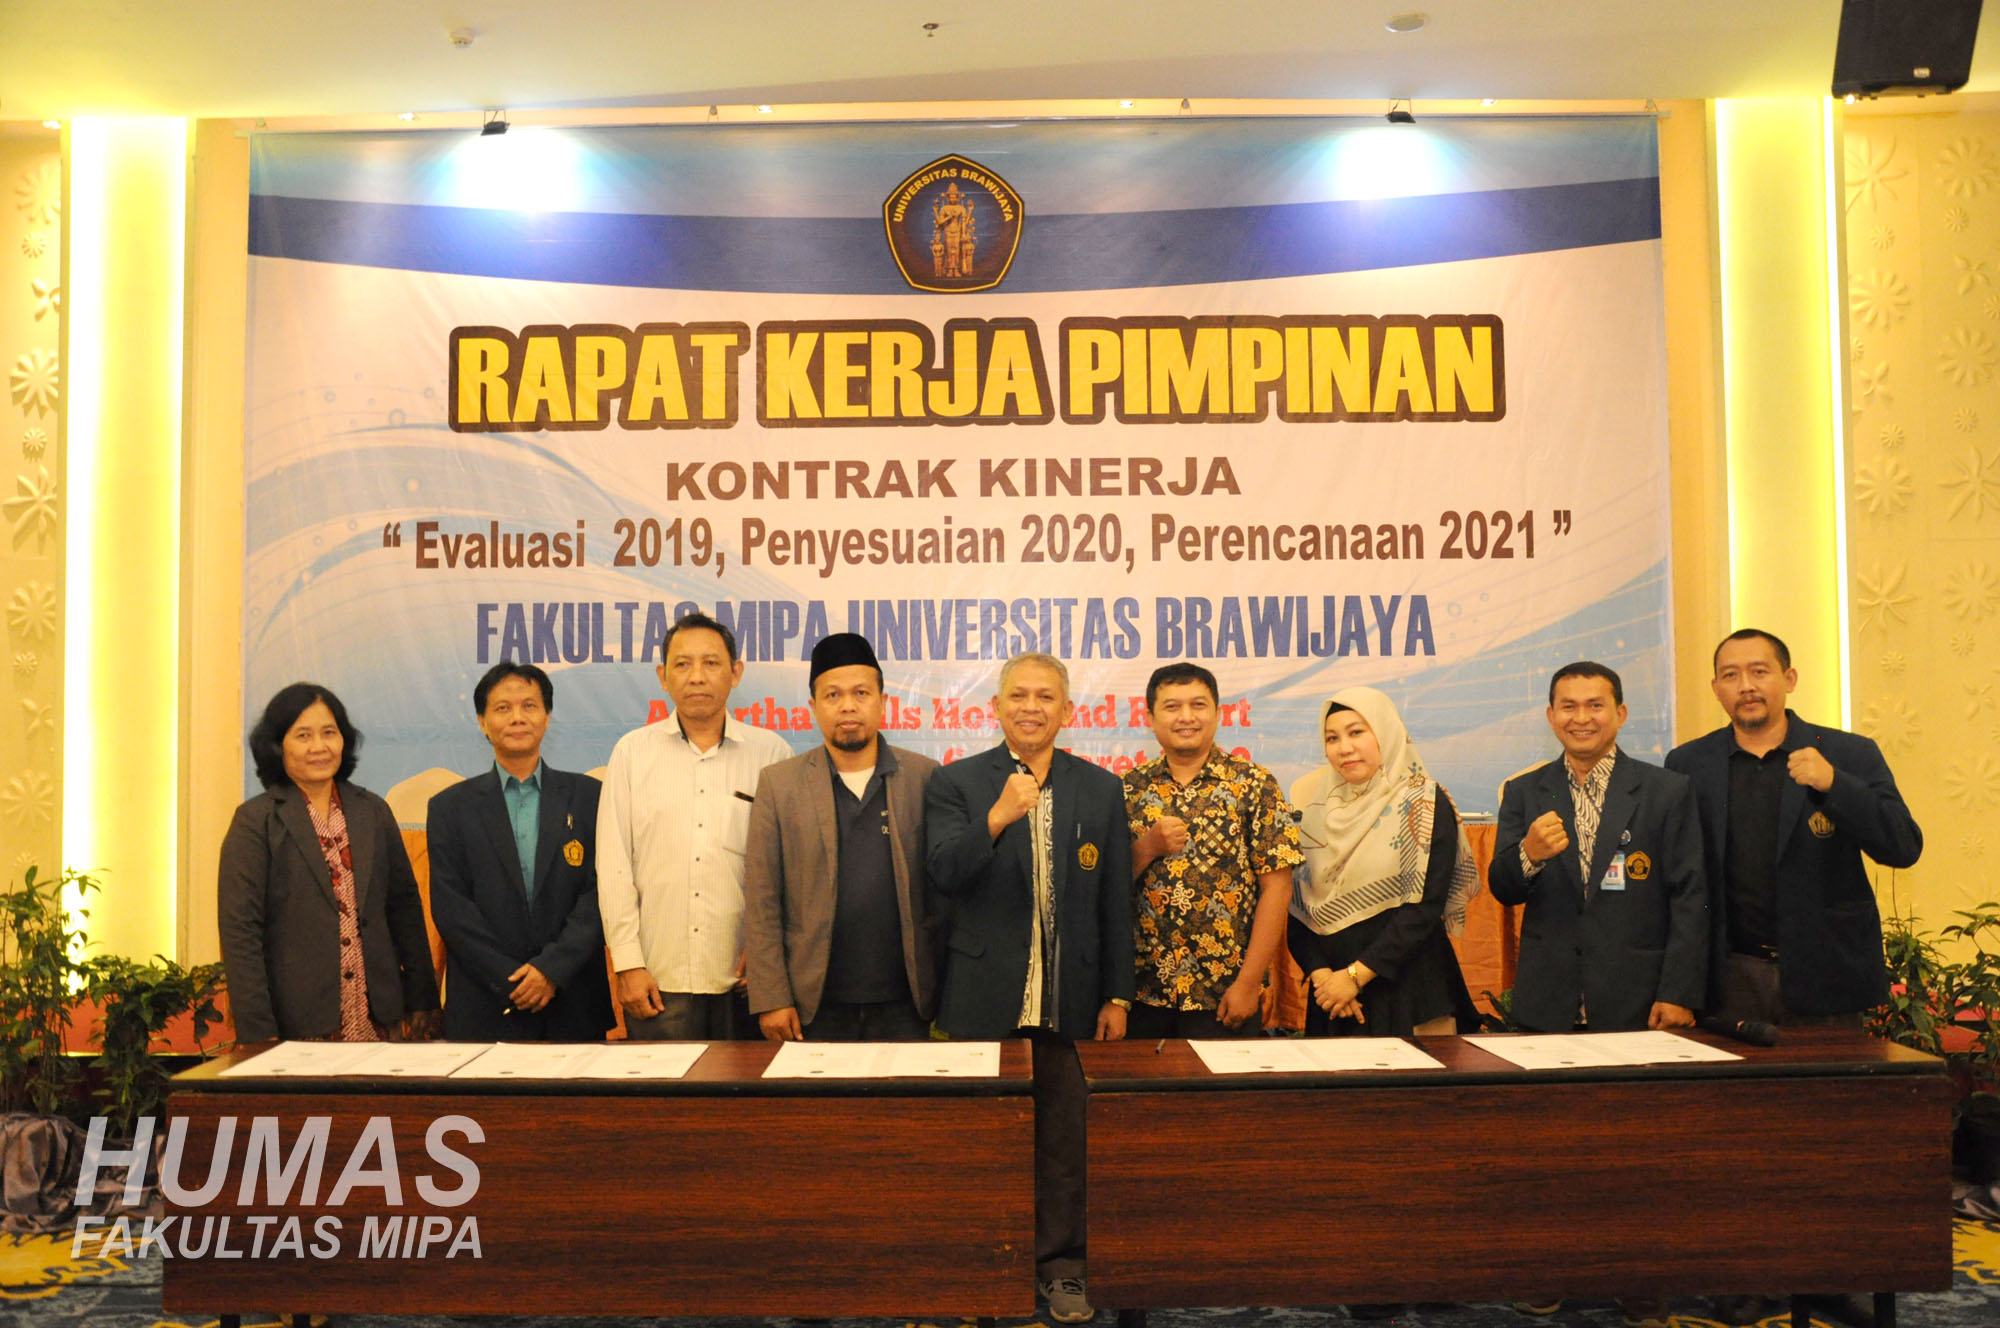 Rakerpim 2020, FMIPA will have new Actuarial program